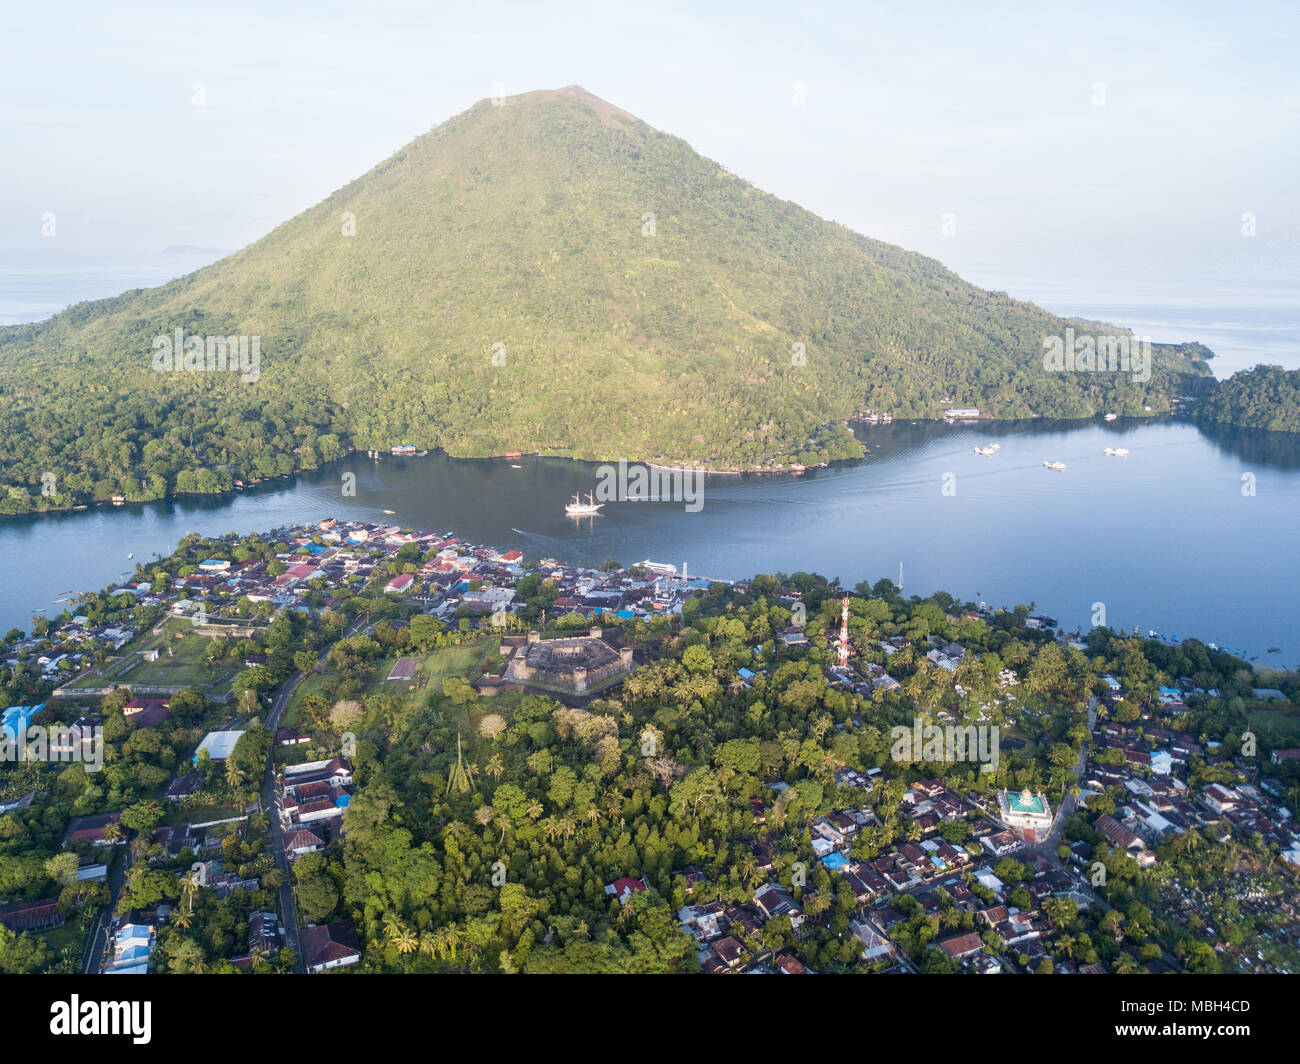 The famous and remote Banda Islands are home to amazing reefs in the Banda Sea. This region is in the Coral Triangle and has high marine biodiversity. Stock Photo